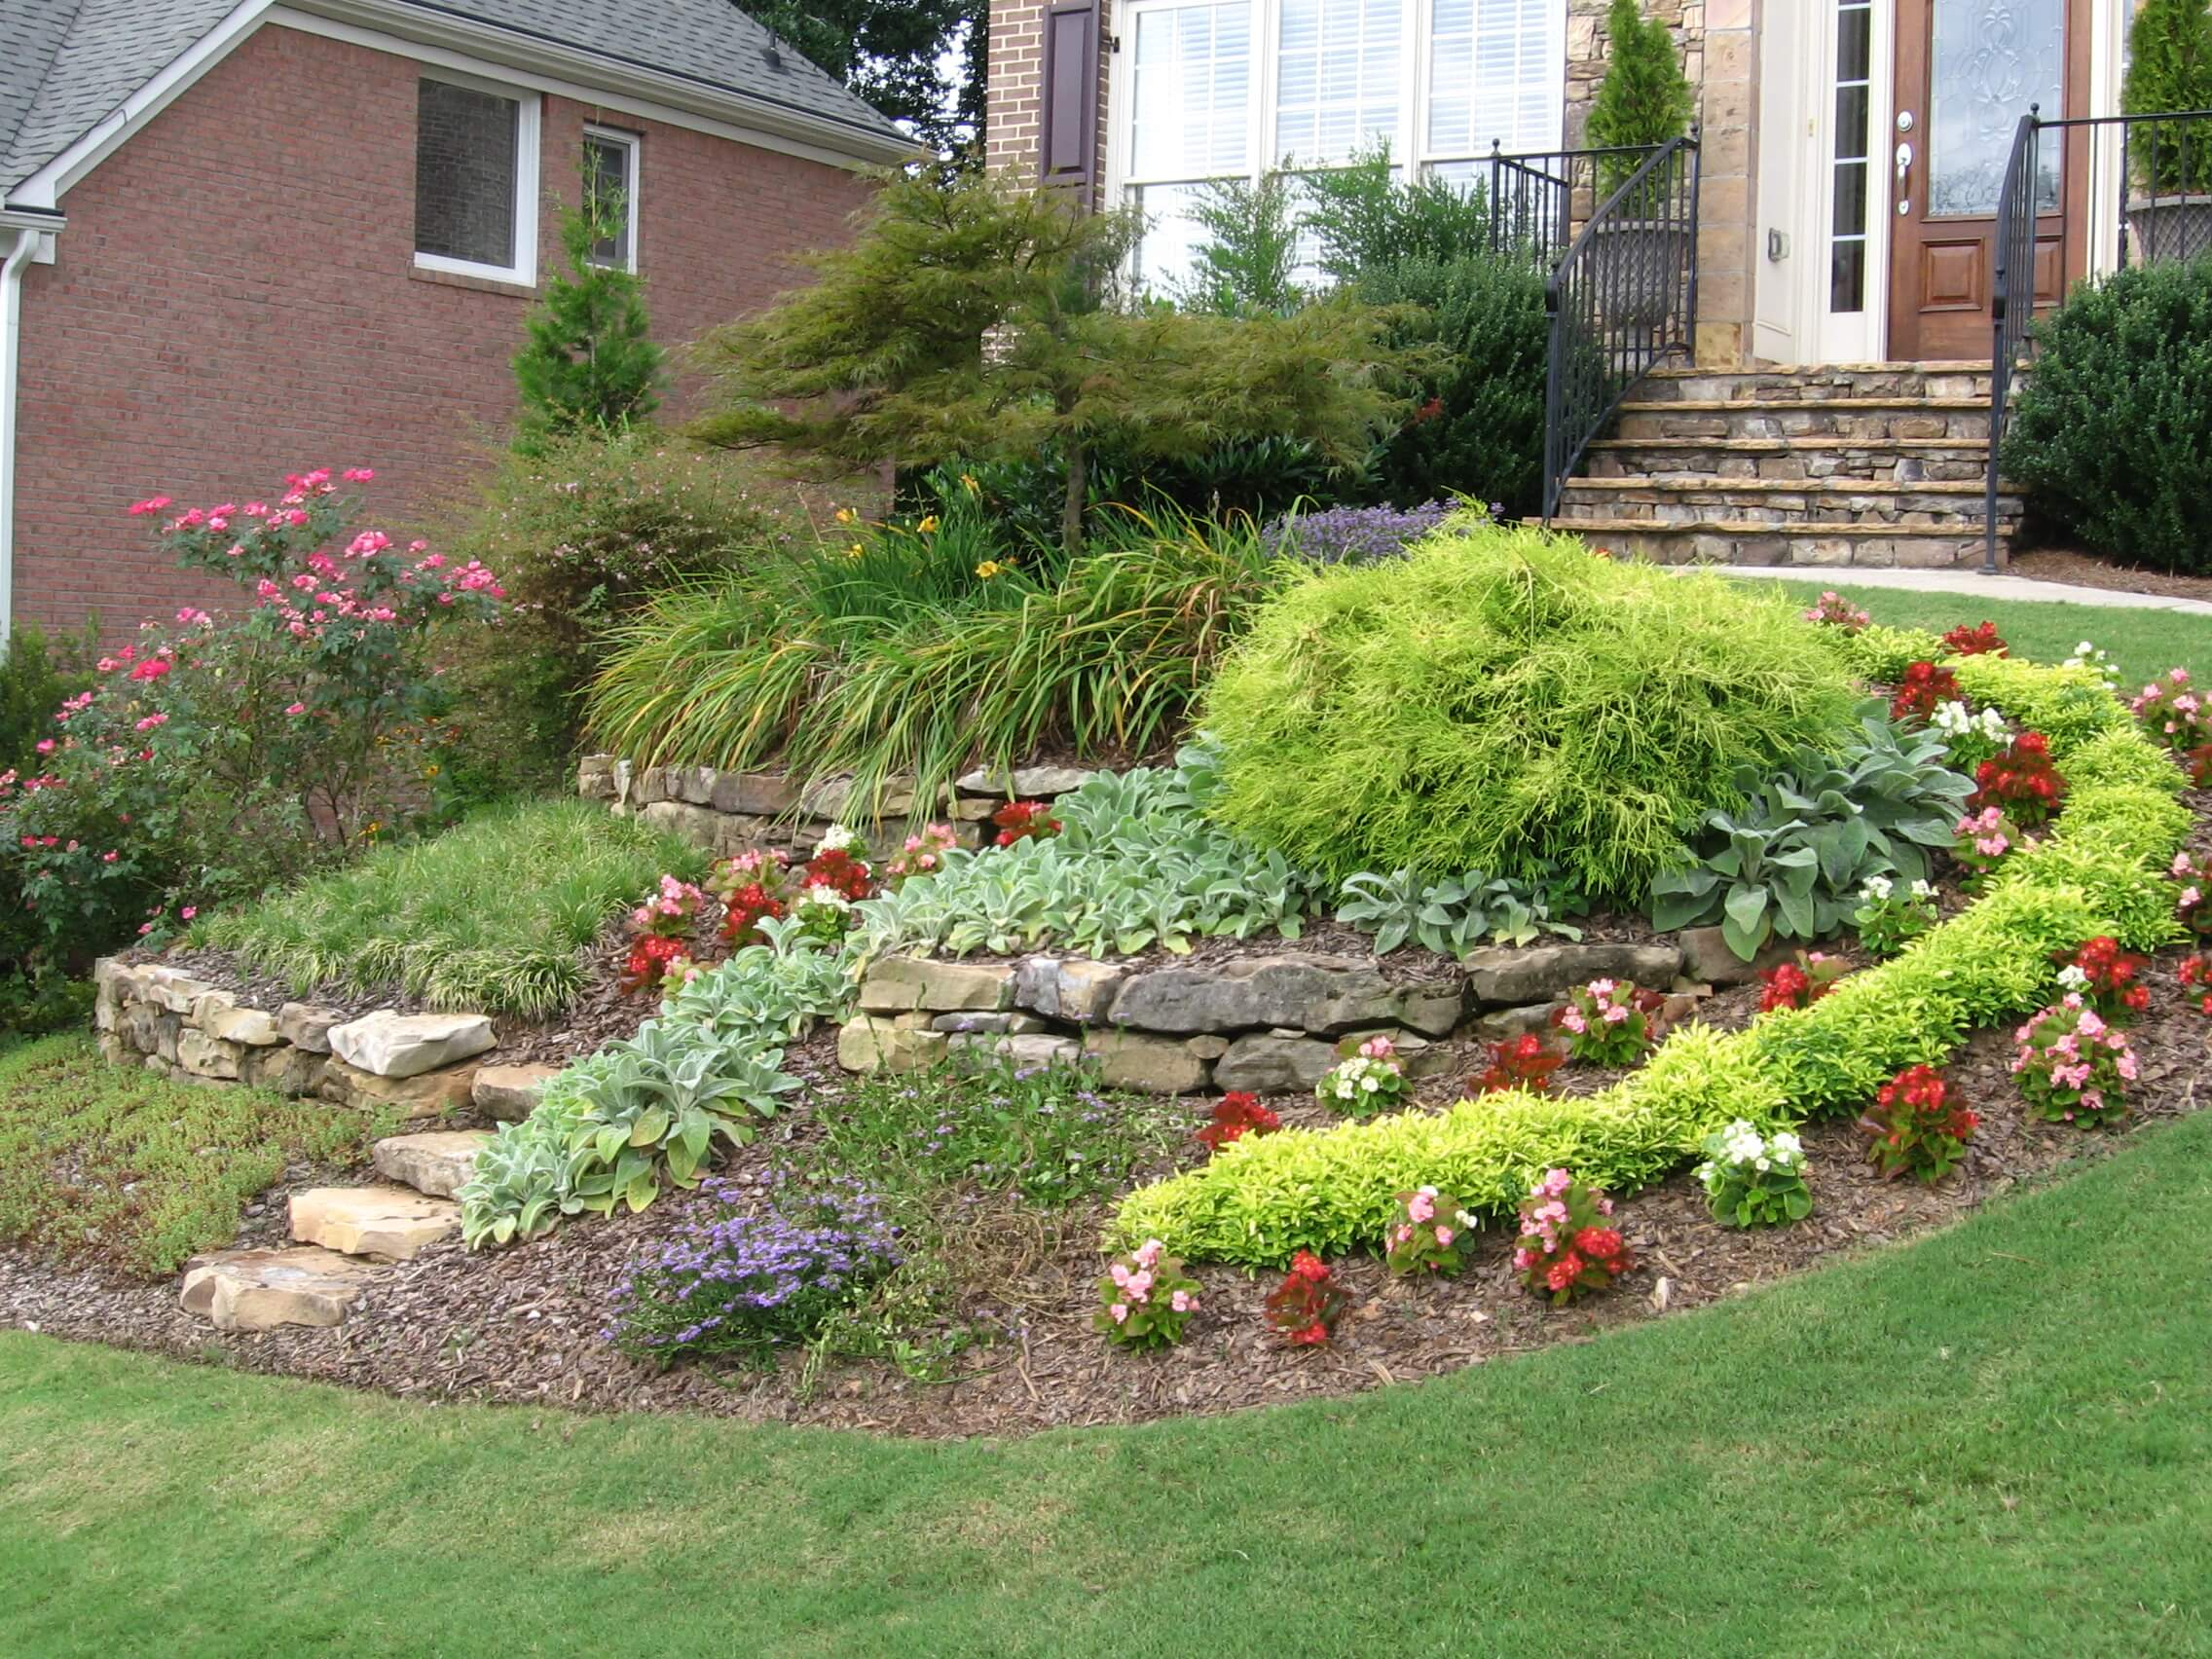 Make Your Yard the Most Beautiful on the Block - CM ...